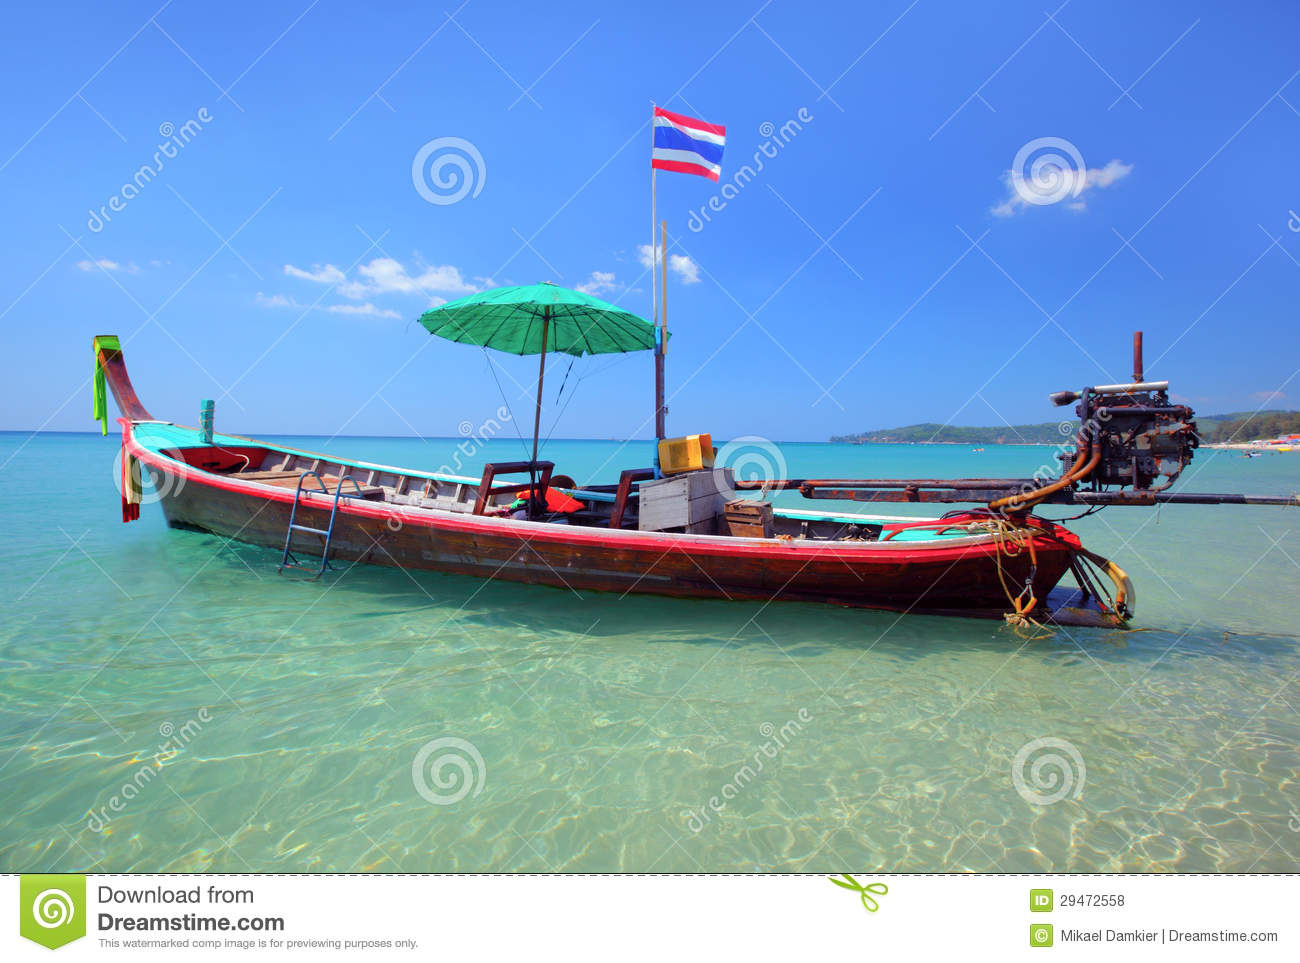 Long Tail Boat In Thailand Royalty Free Stock Photos - Image: 29472558